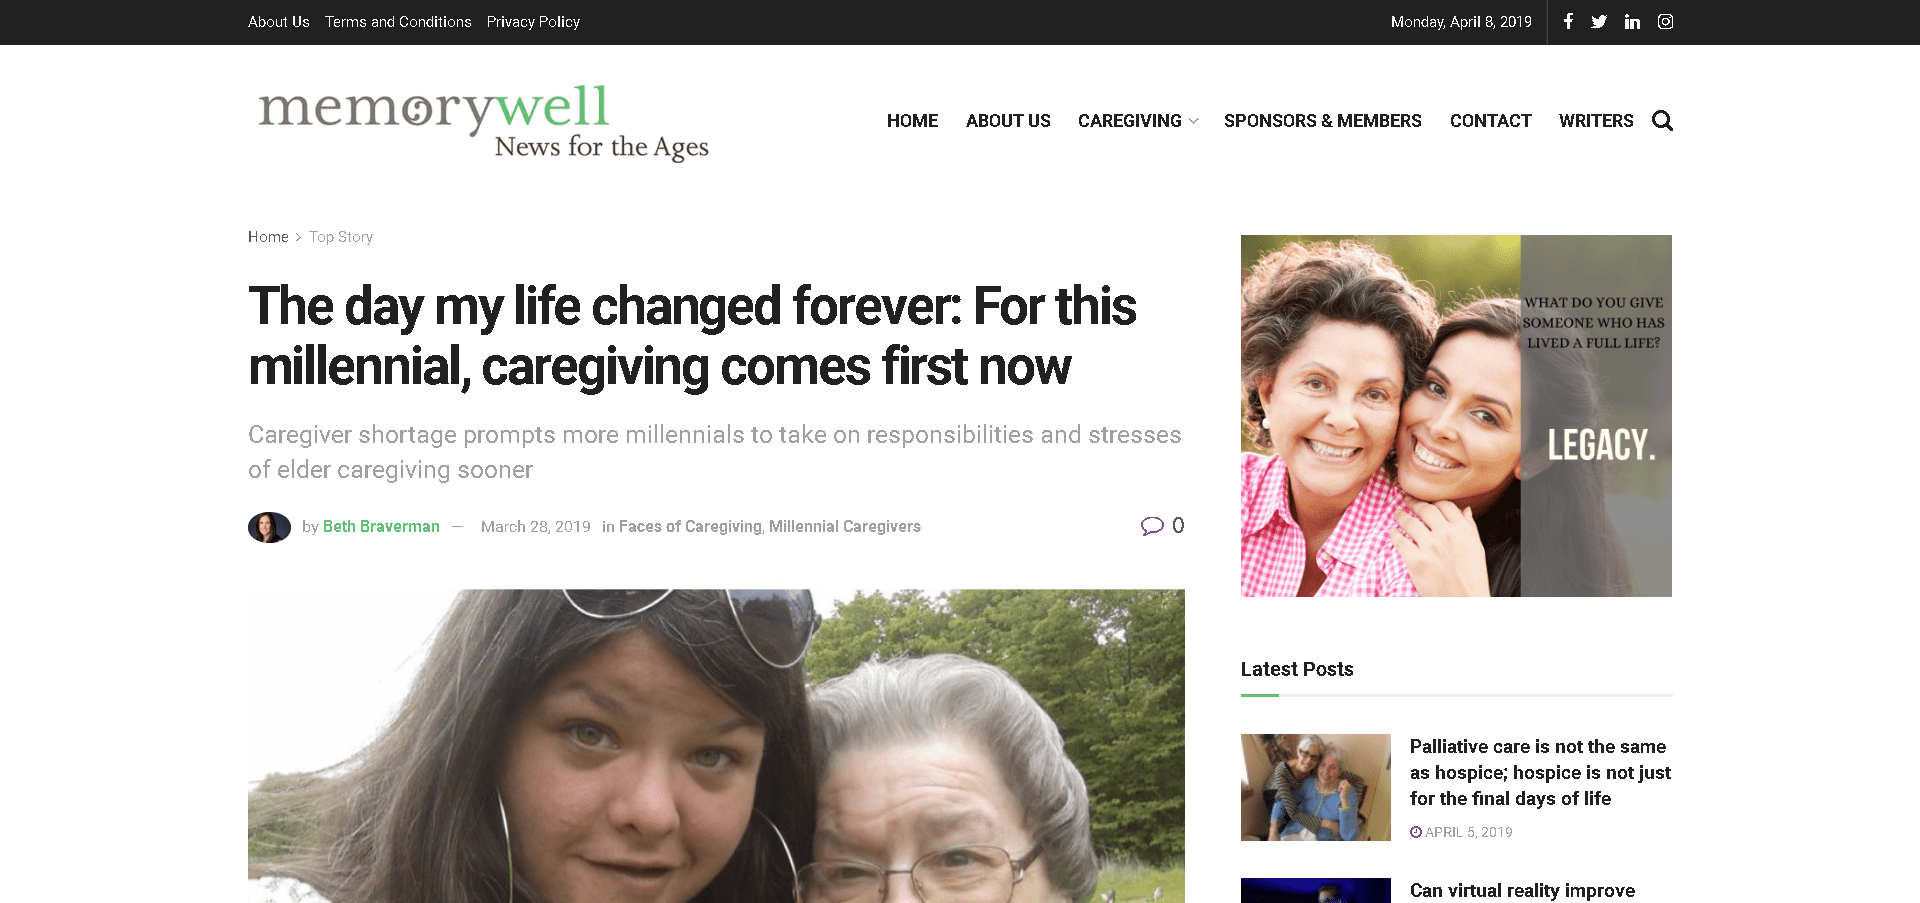 Rachel's Caregiving Story Featured on MemoryWell